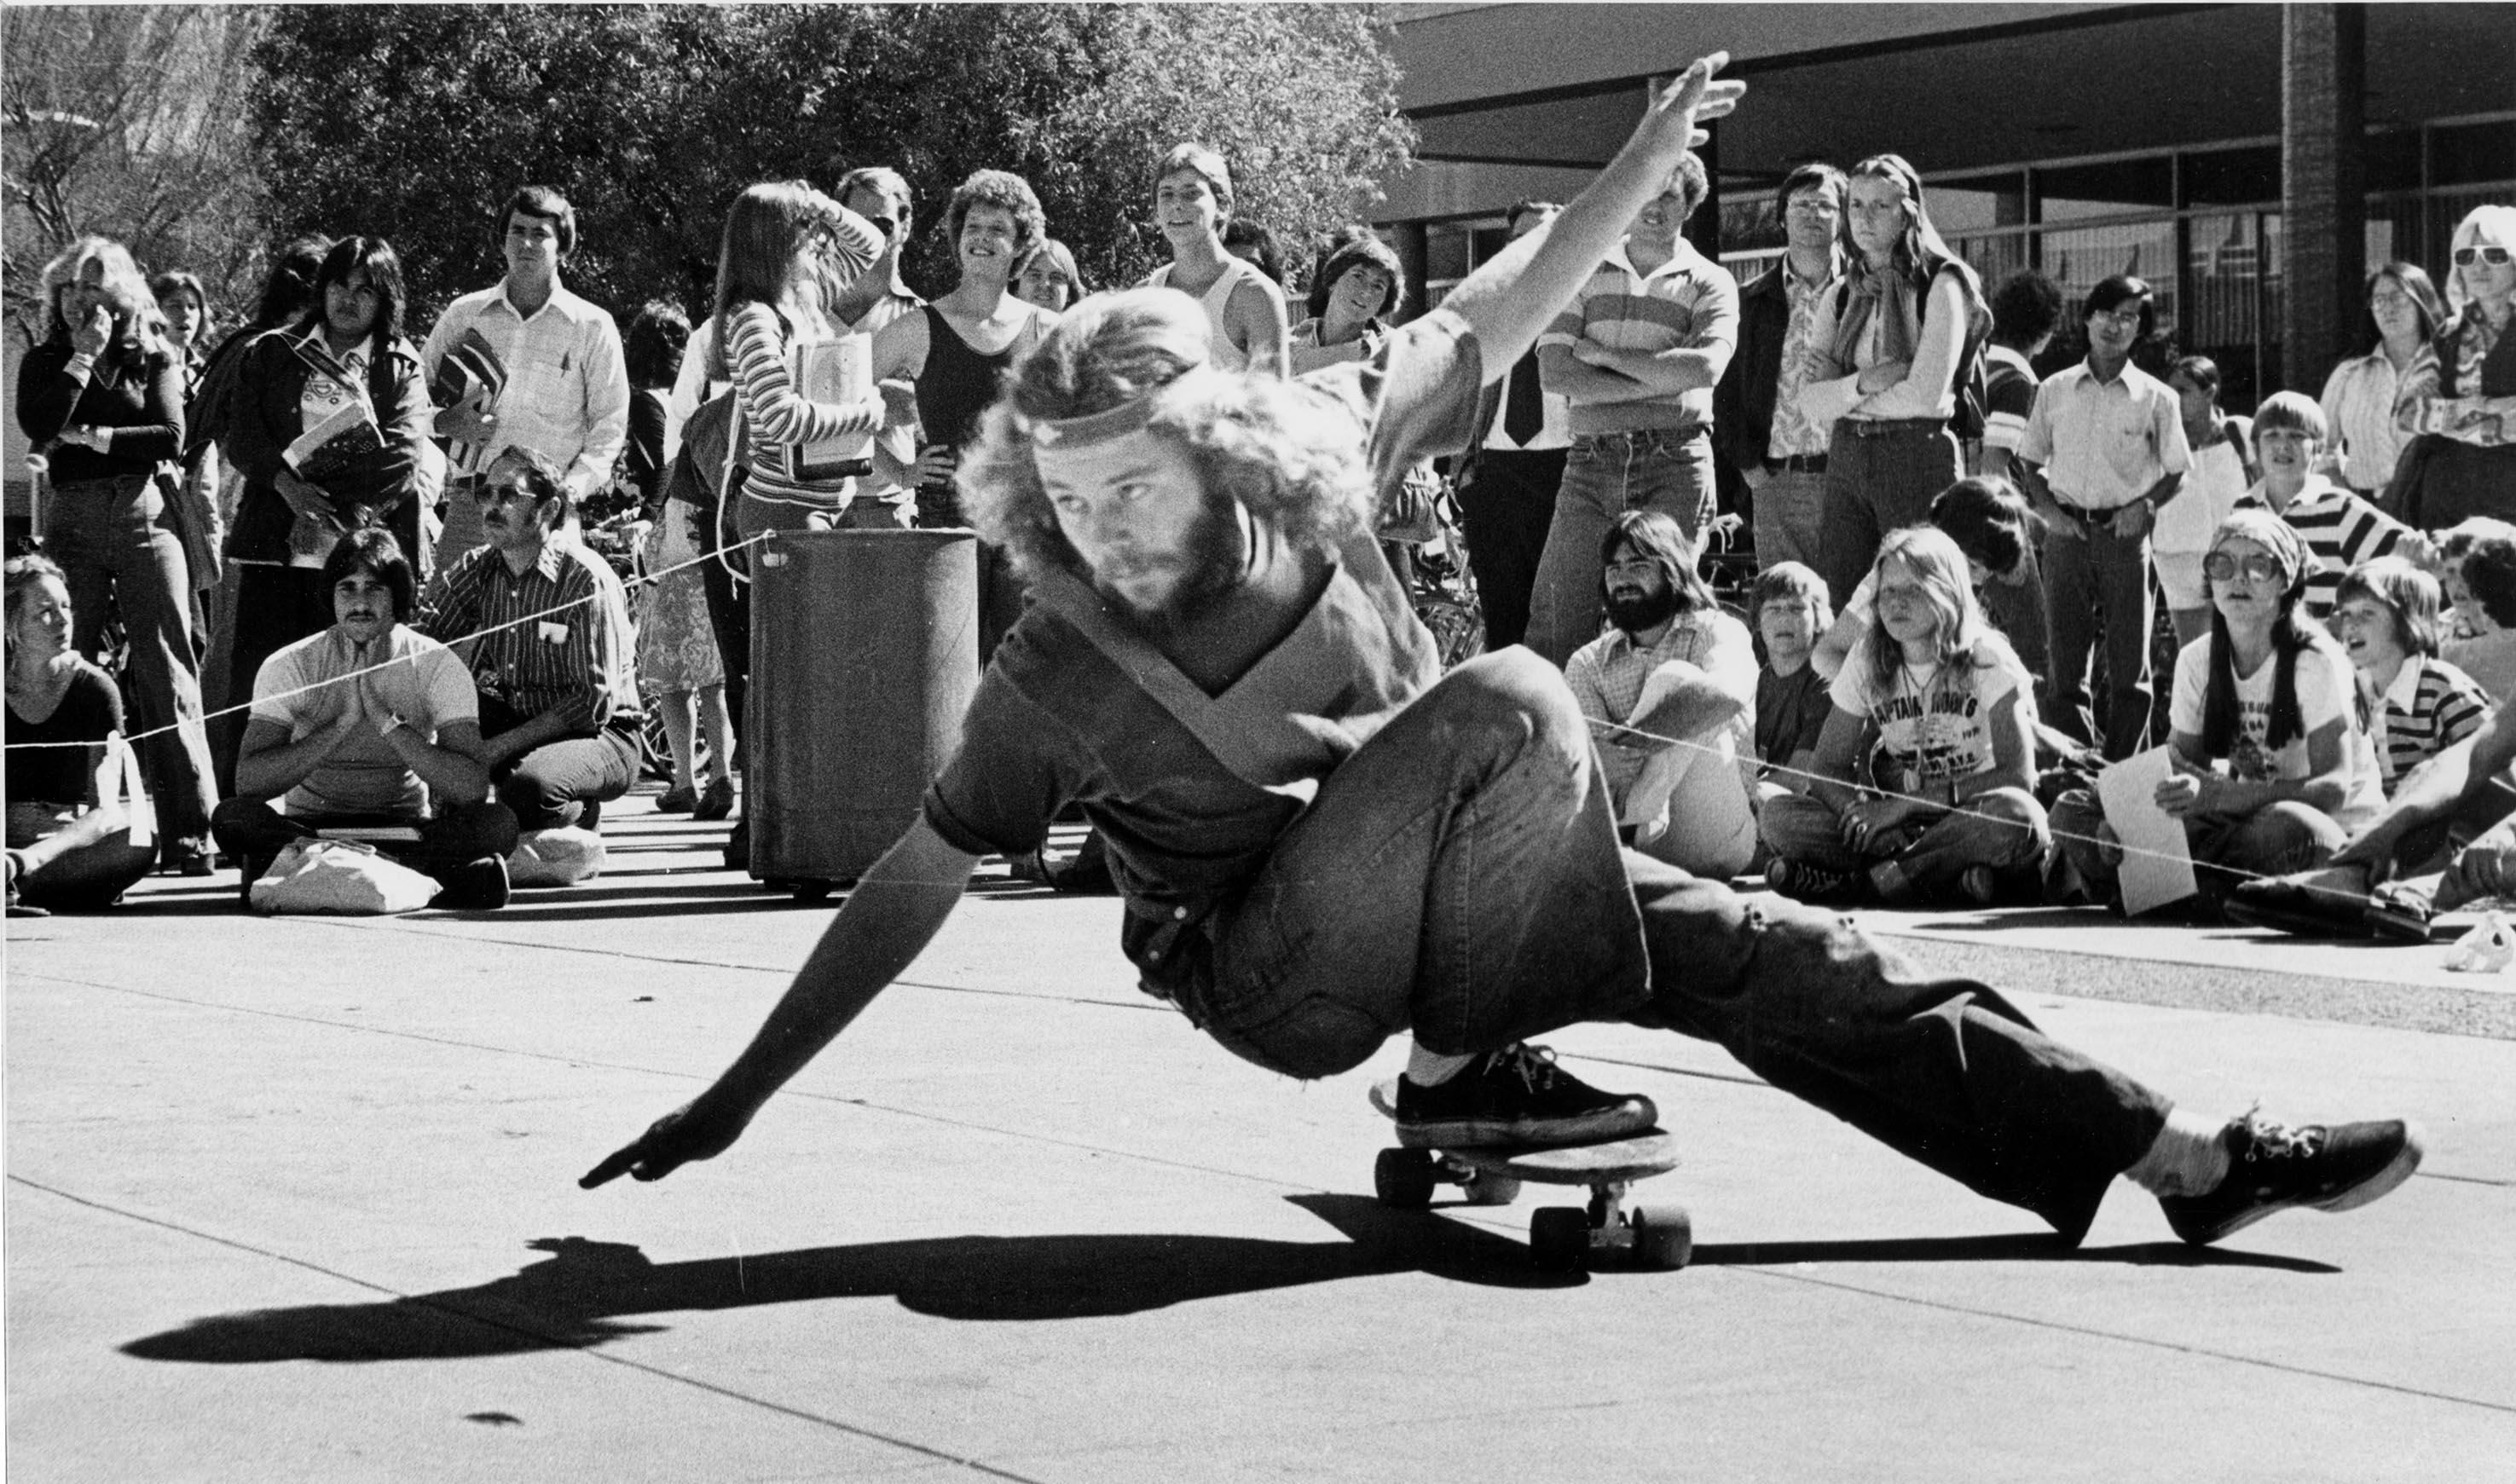 Student skateboarding on the 1970s ASU campus. / Photo from ASU Libraries. UP UPC ASUG S882 1970s #9